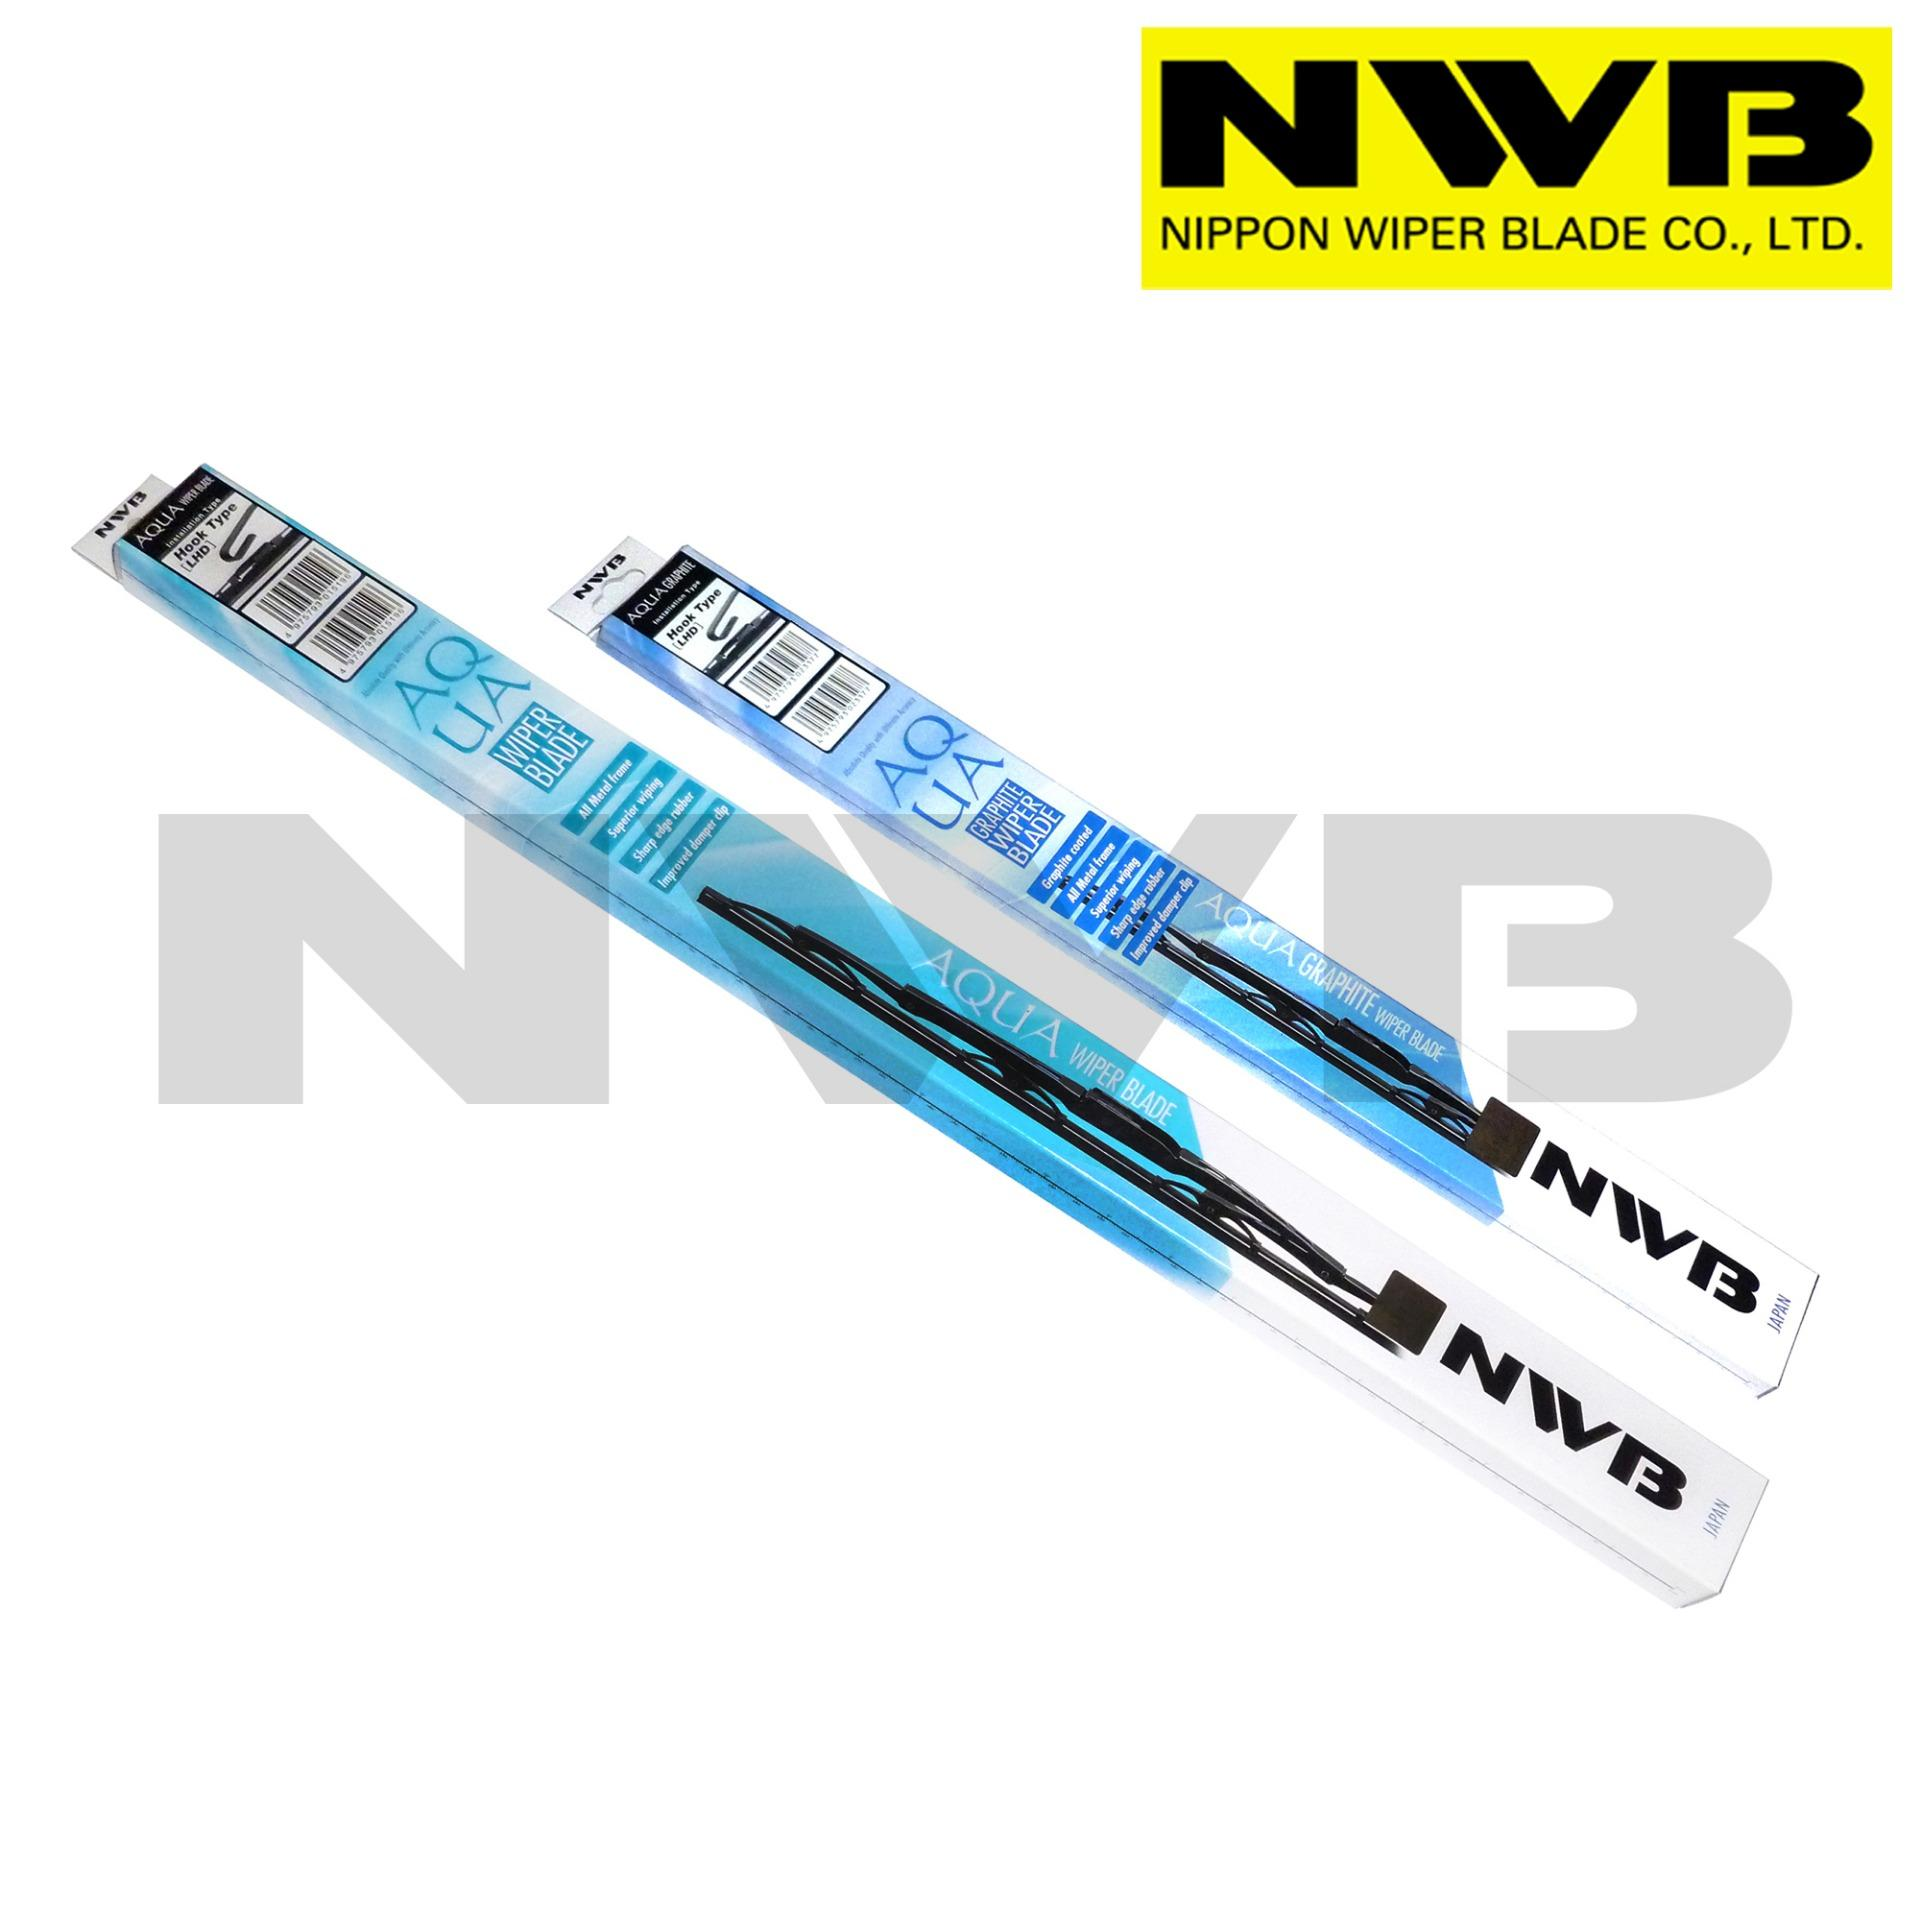 NWB AQUA Wiper Blade for Toyota Altis 2008-2013 - (SET)